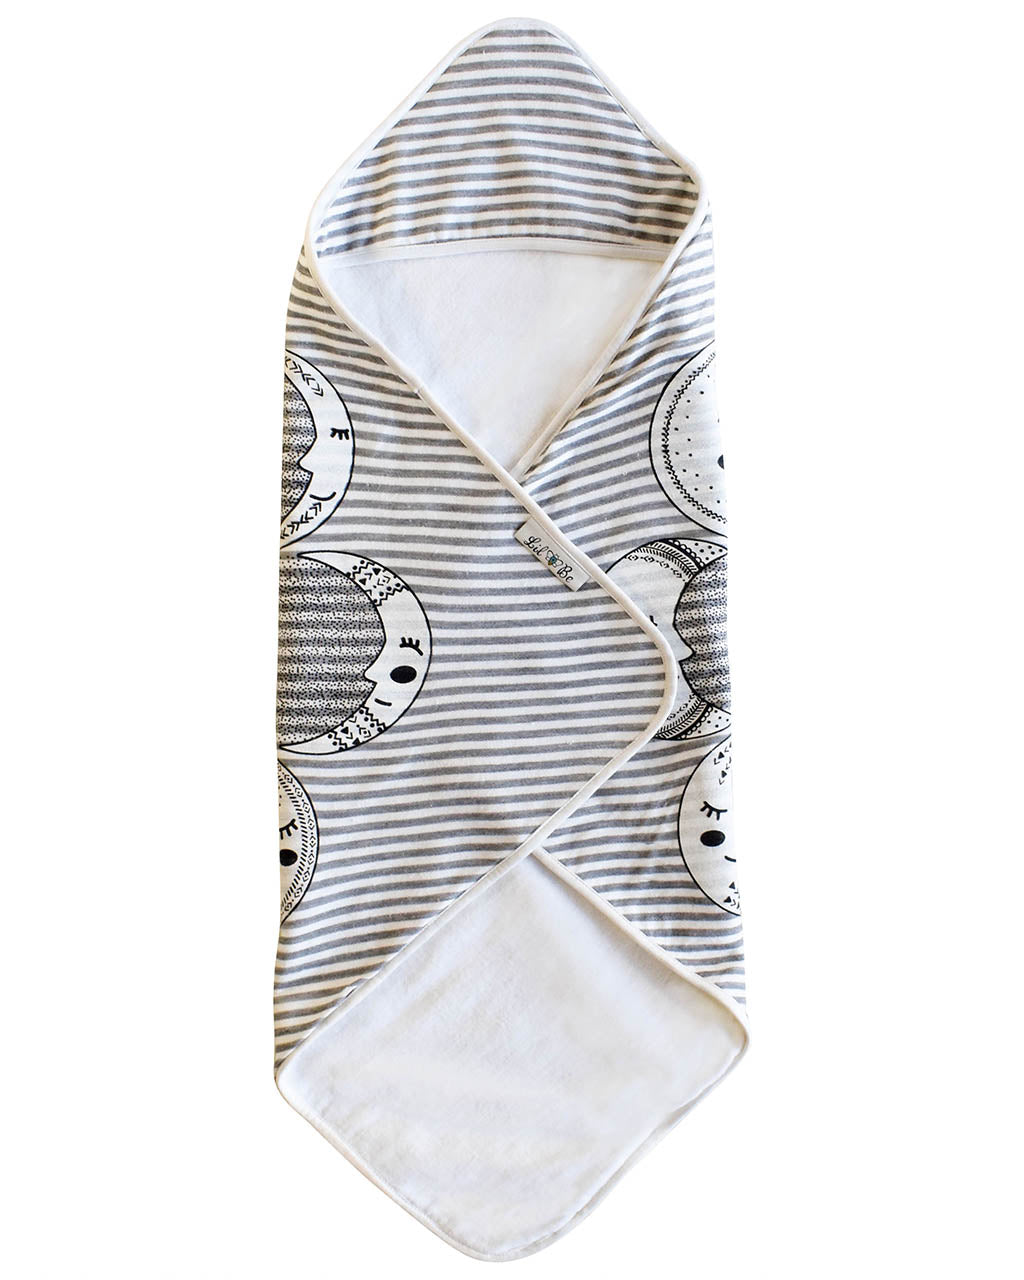 Moon Phases Hooded Towel Fold Up View